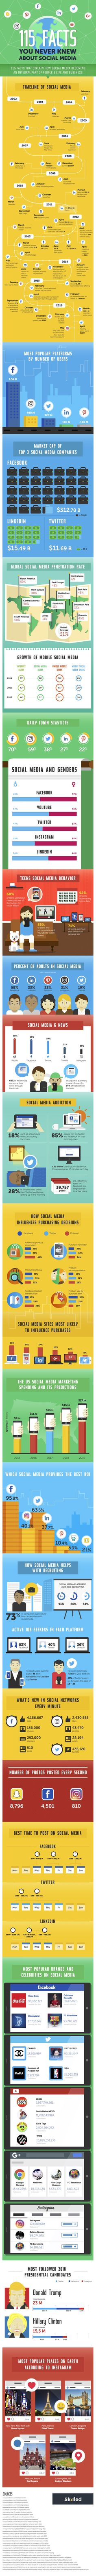 115 Facts you never knew about #SocialMedia - #infographic